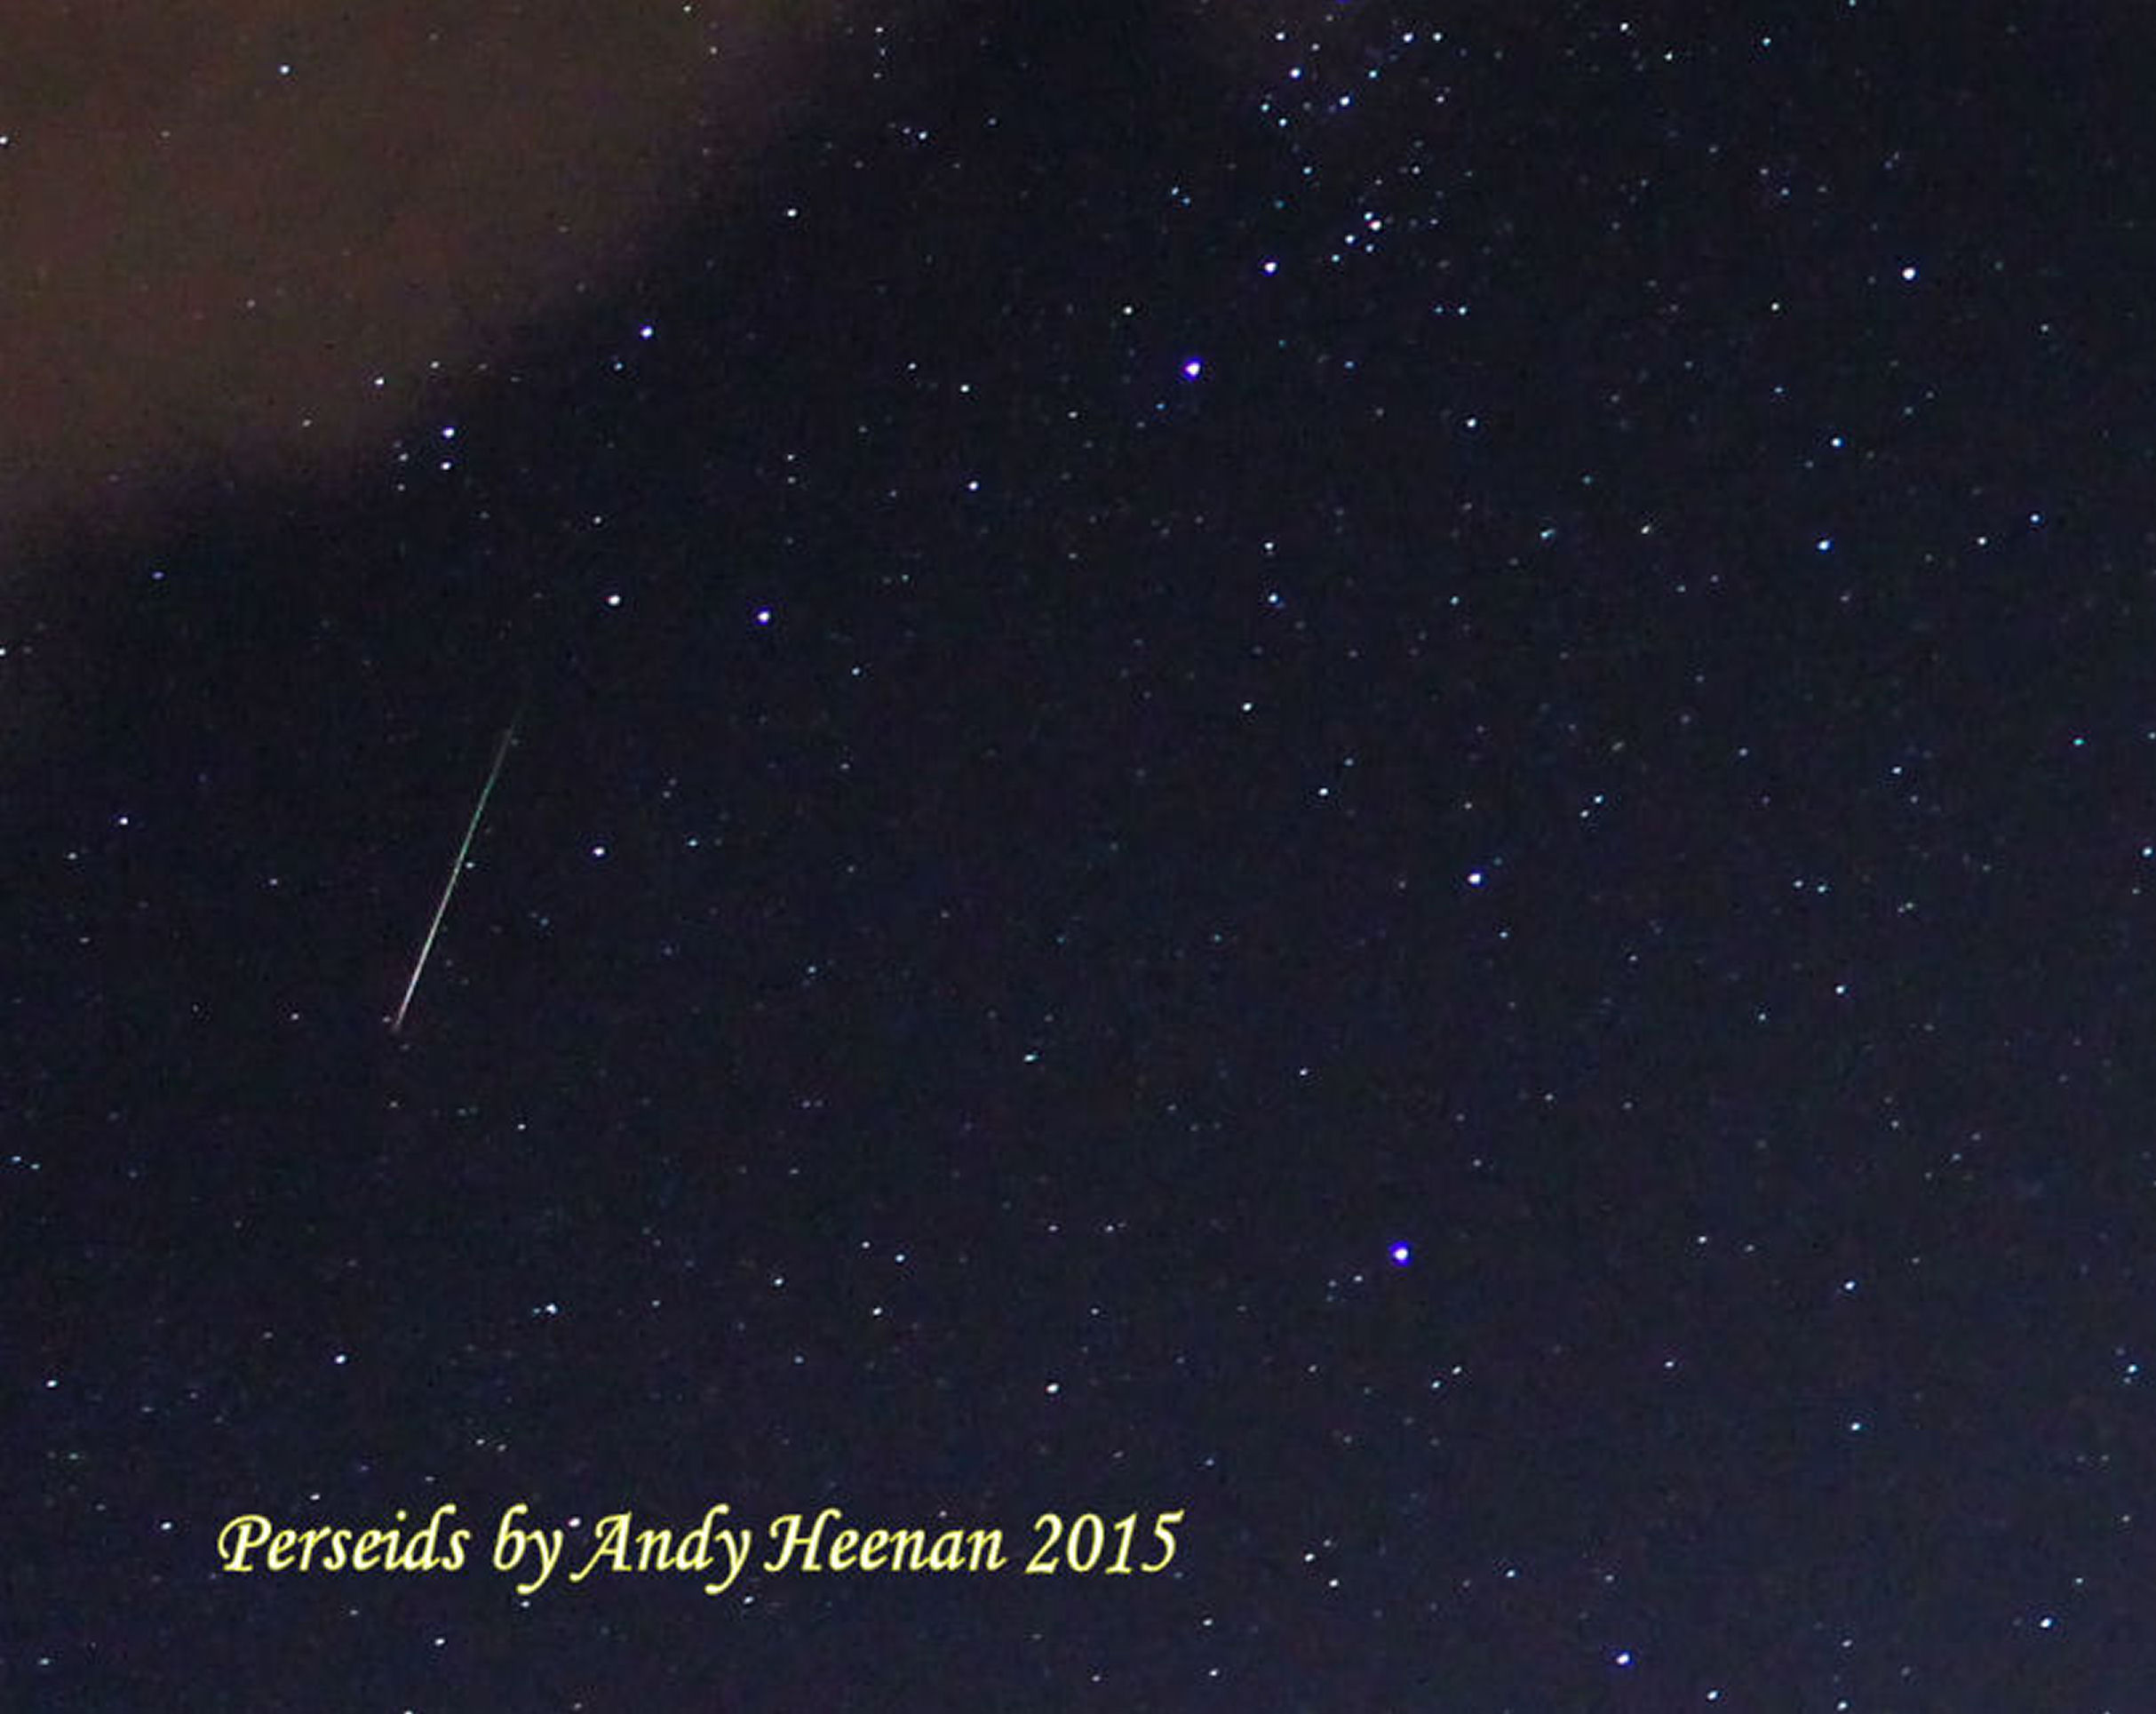 Perseid By Andy Heenanan. 10th August Canon EOS 1100d f/3.5.  ISO 3200 15 second exposure